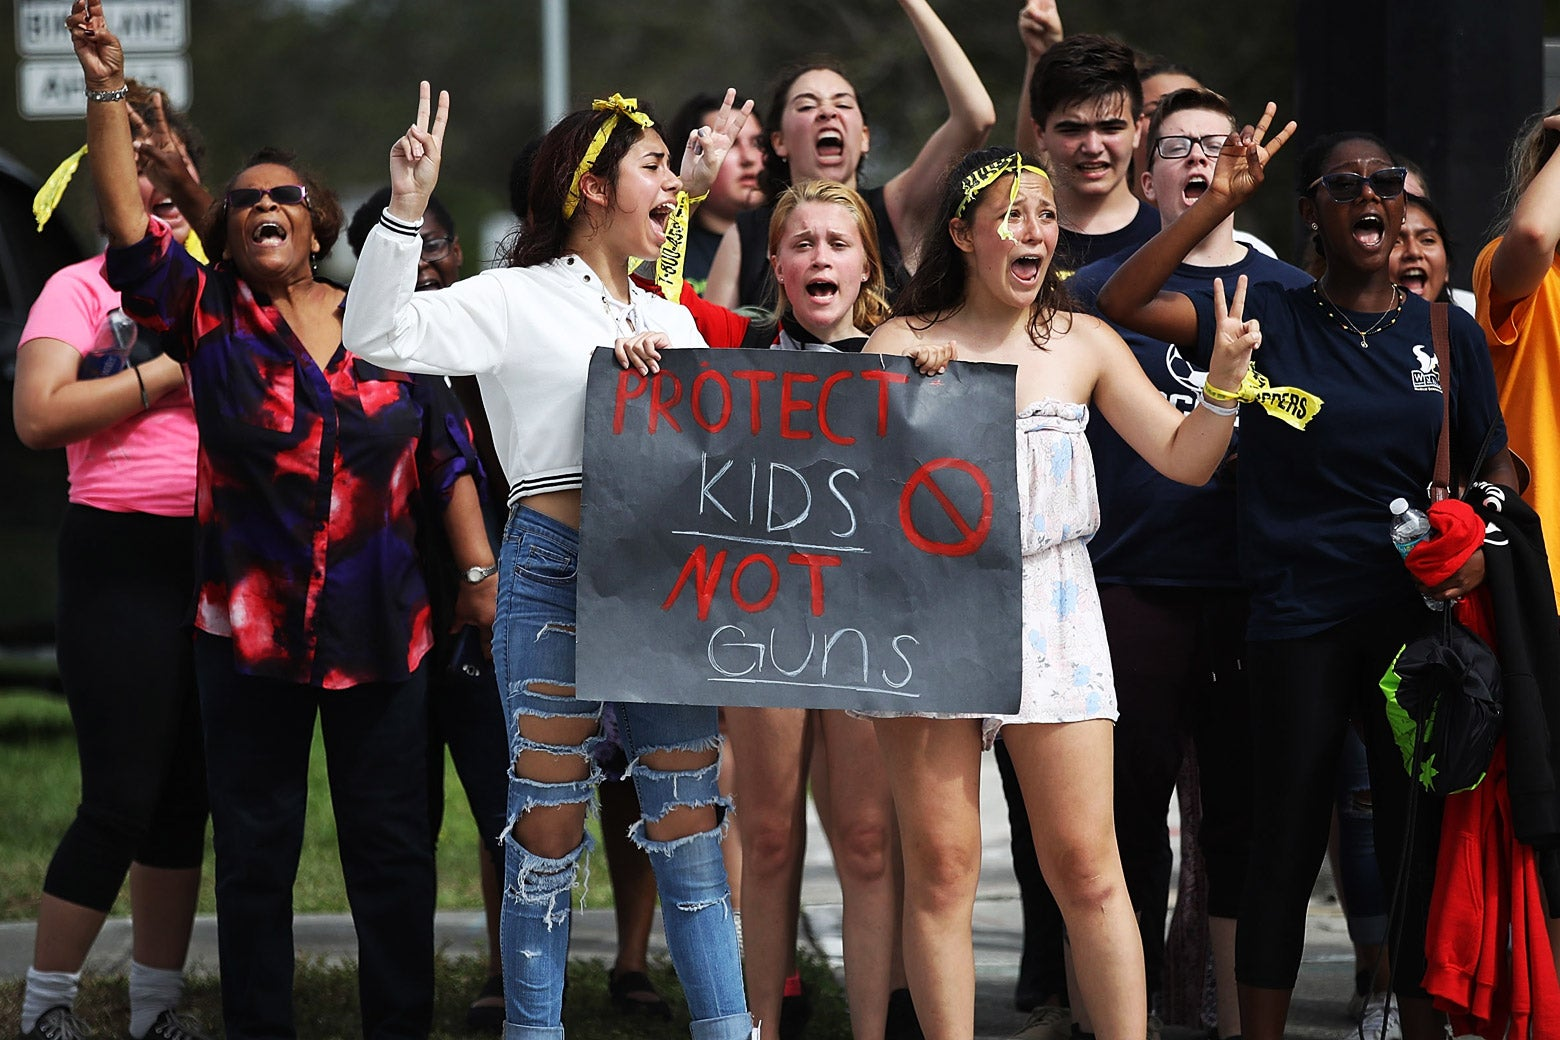 West Boca High School students arrive at Marjory Stoneman Douglas High School after walking in honor of the 17 victims of the previous week's school shooting, on Tuesday in Parkland, Florida.